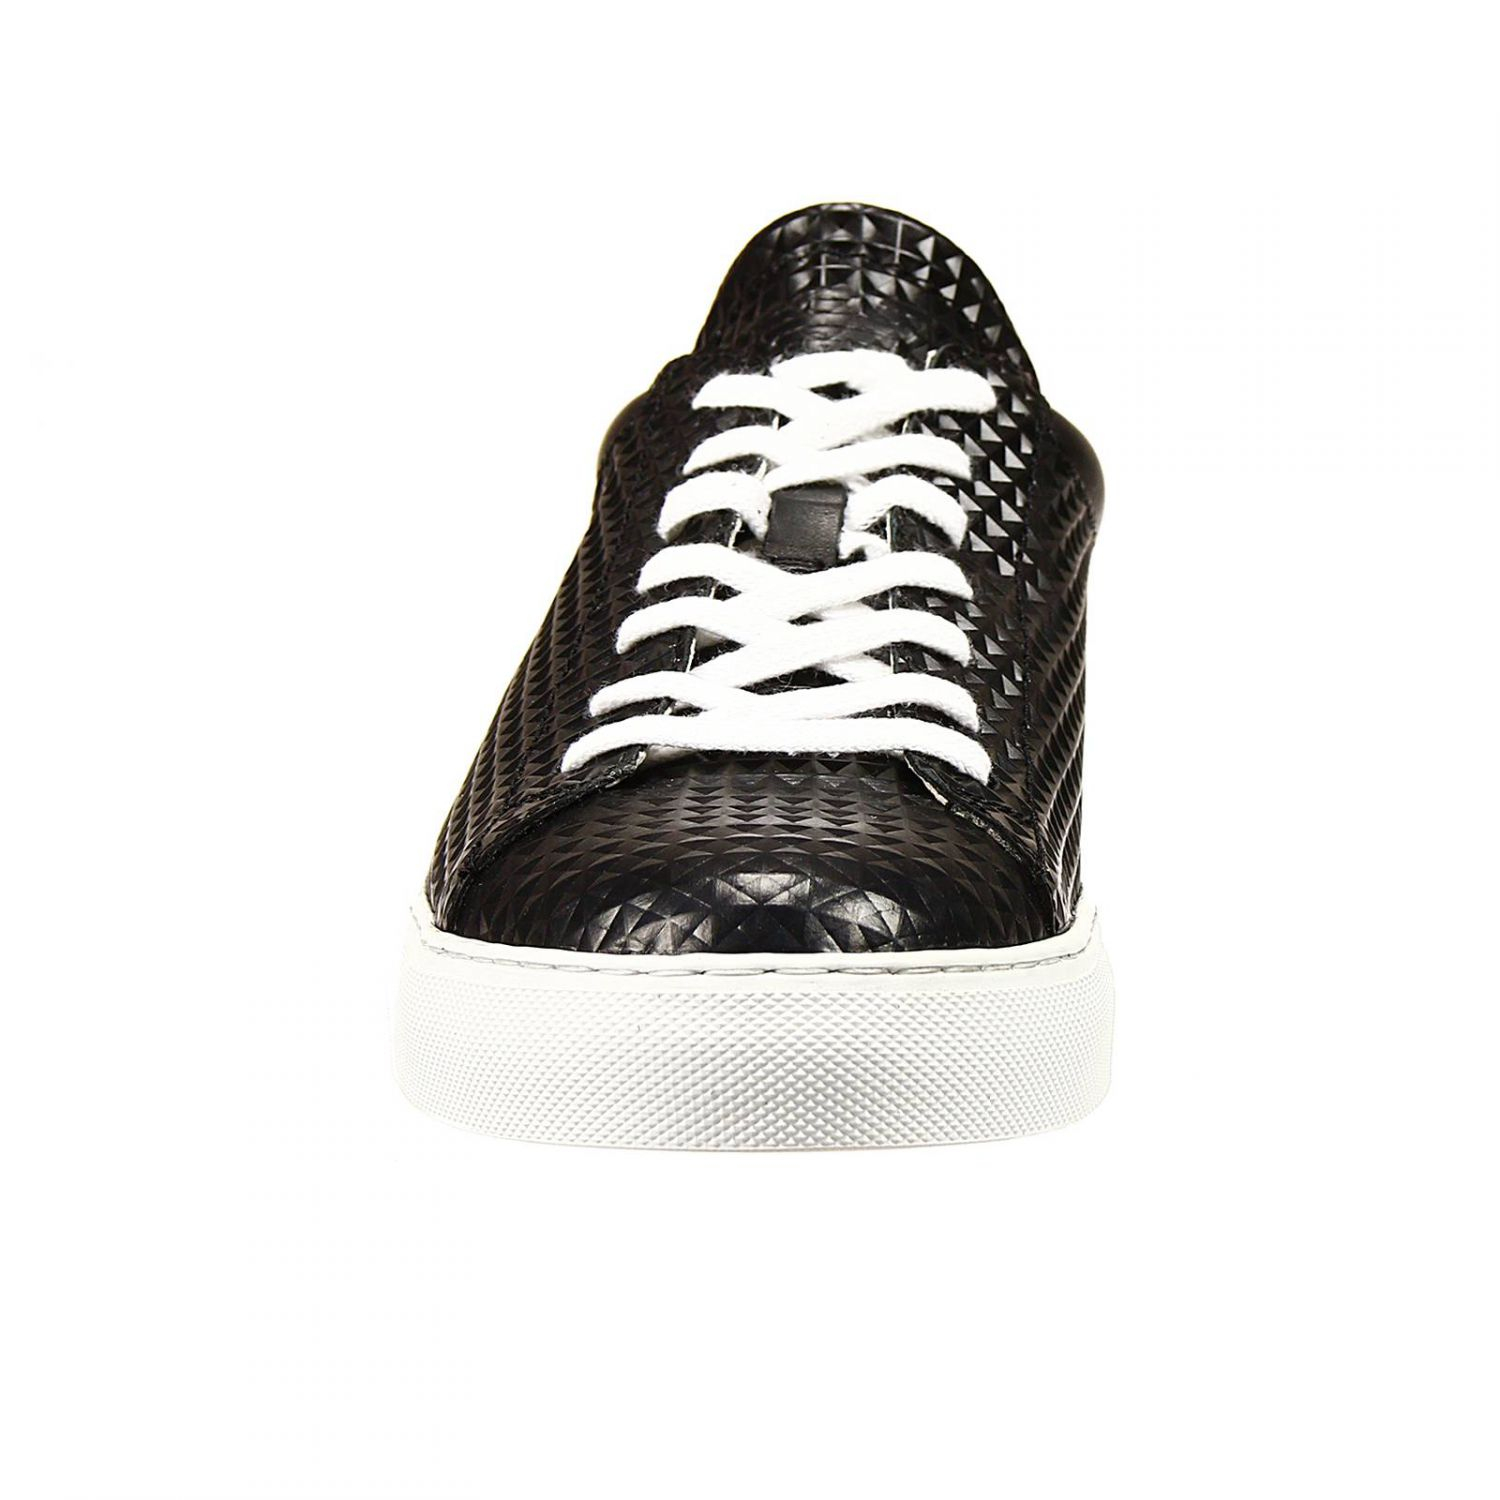 giorgio armani shoes sneakers in patent with 3d prin in